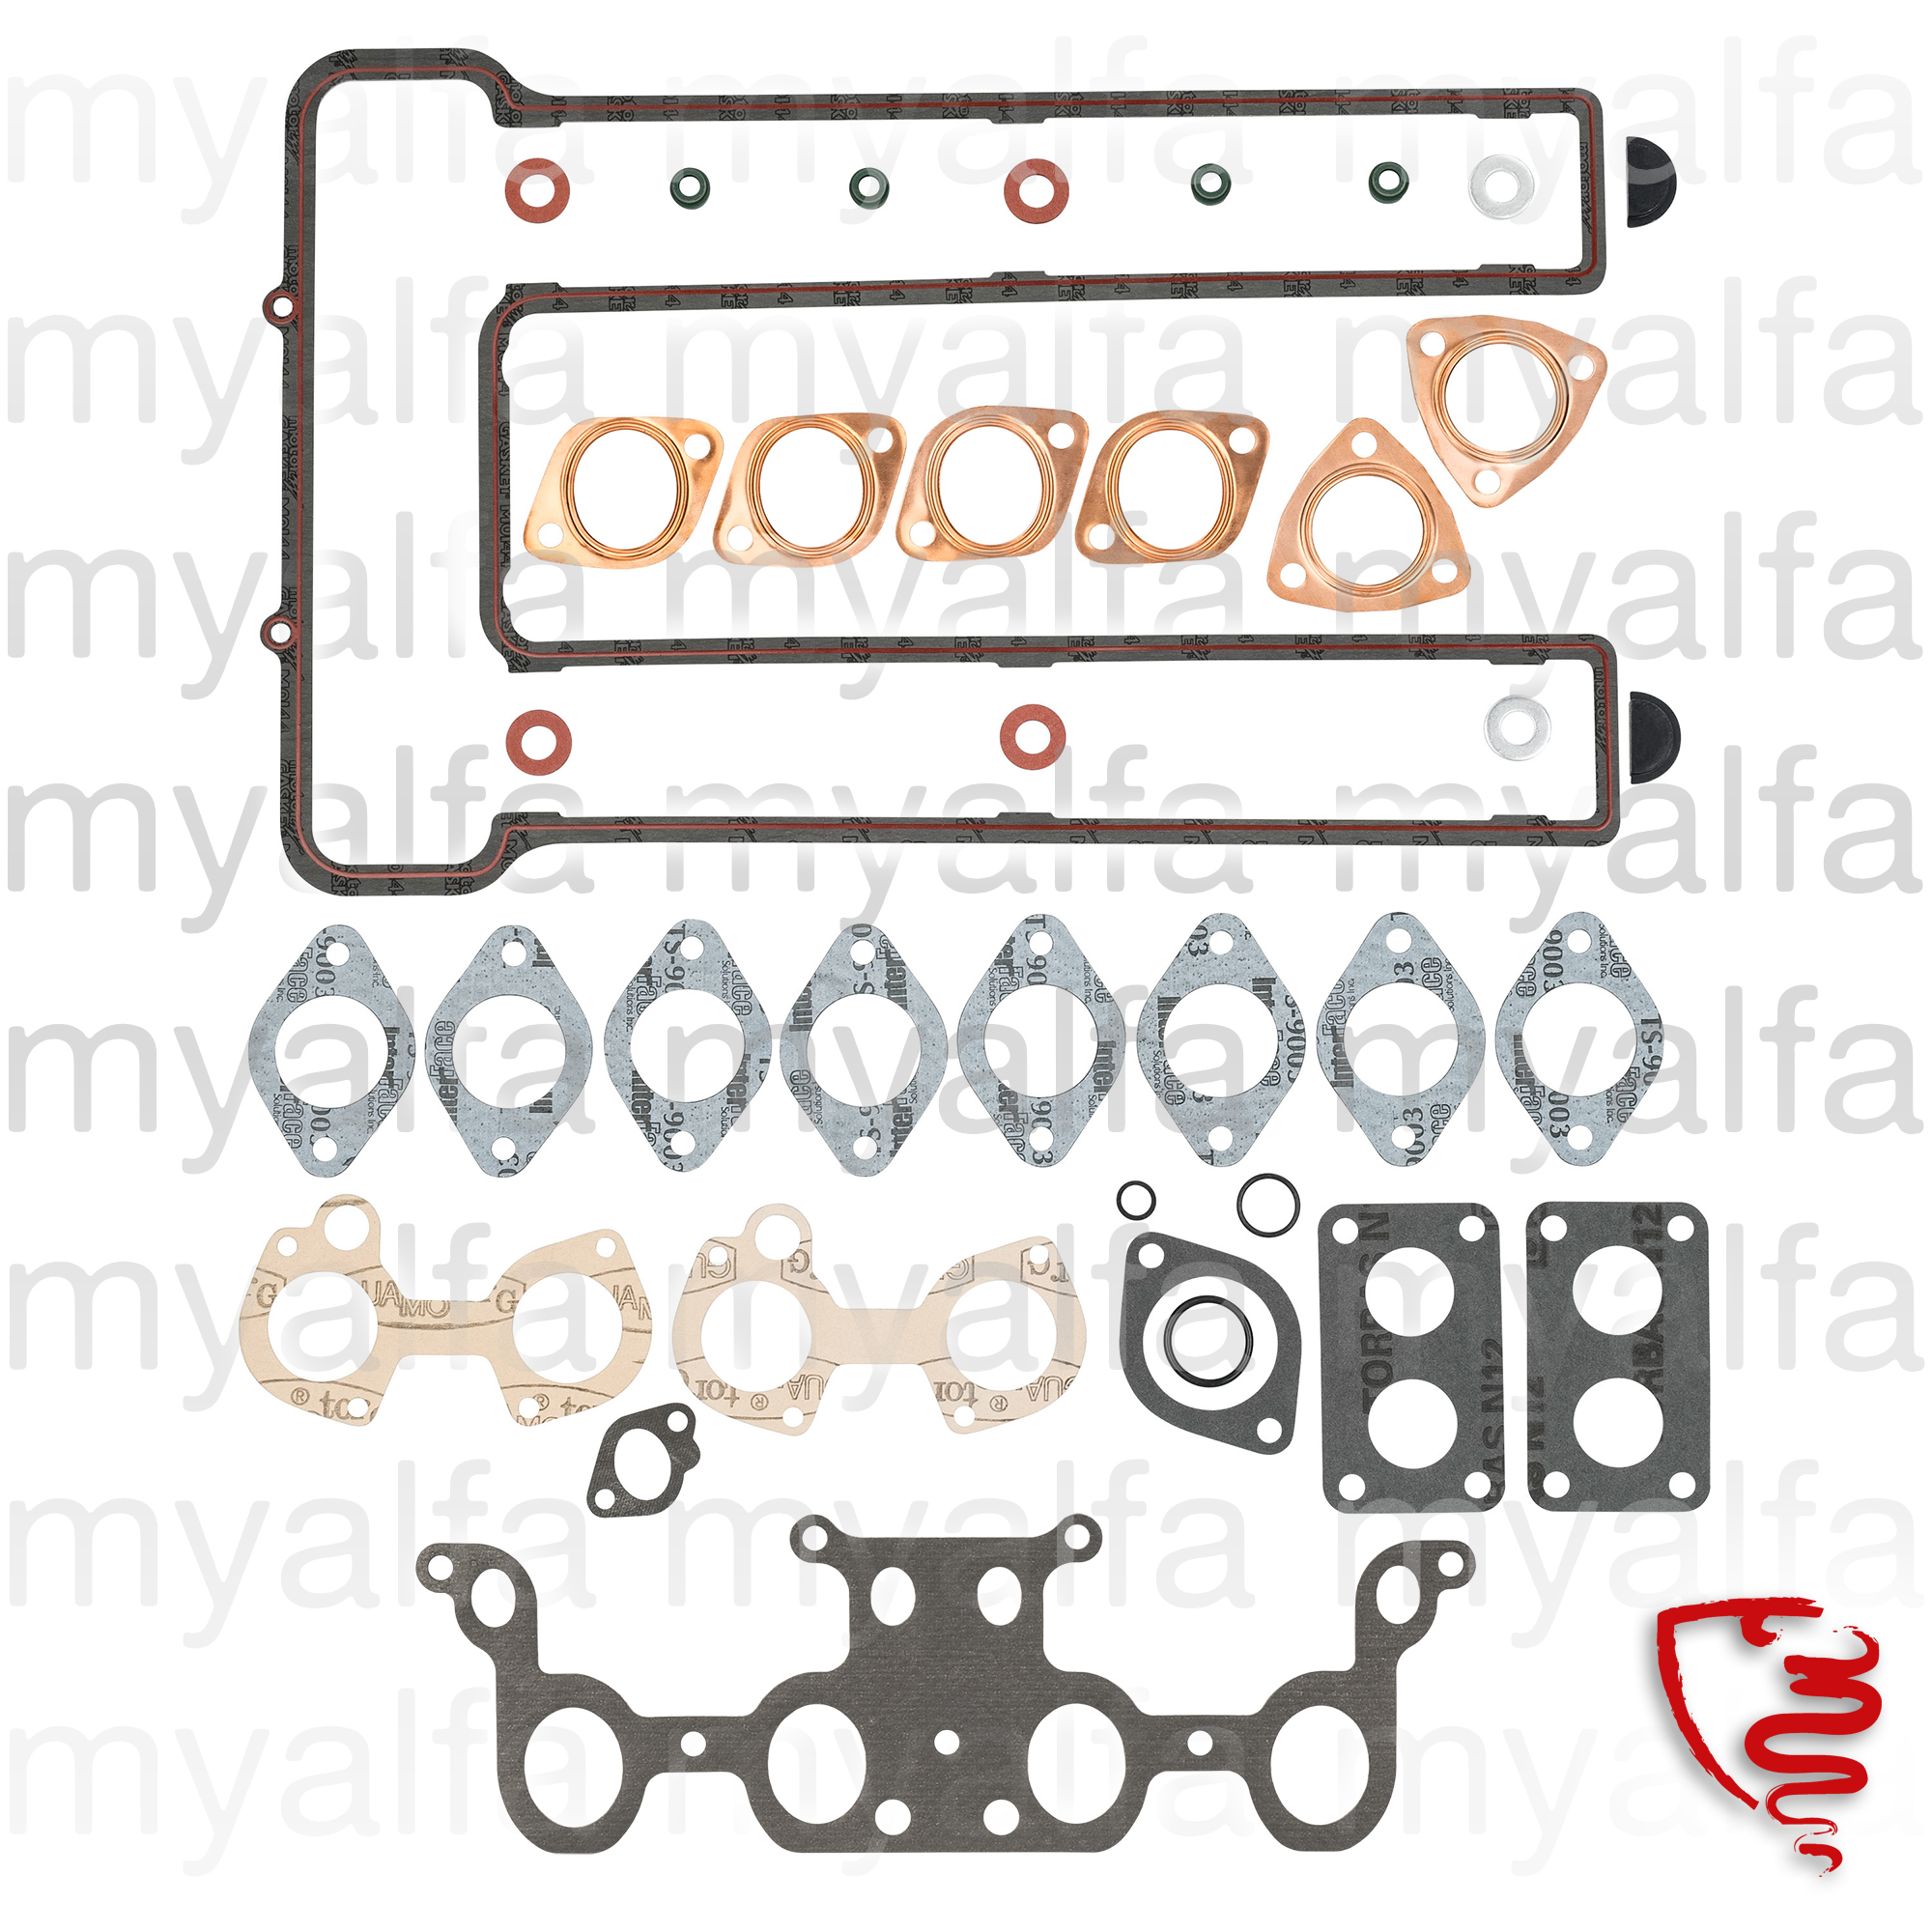 Game descarbunização joints without head gasket 1968 for 750/101, 105/115, Coupe, GTC, Junior, Engine, Engine Gaskets, Complete Gasket Sets